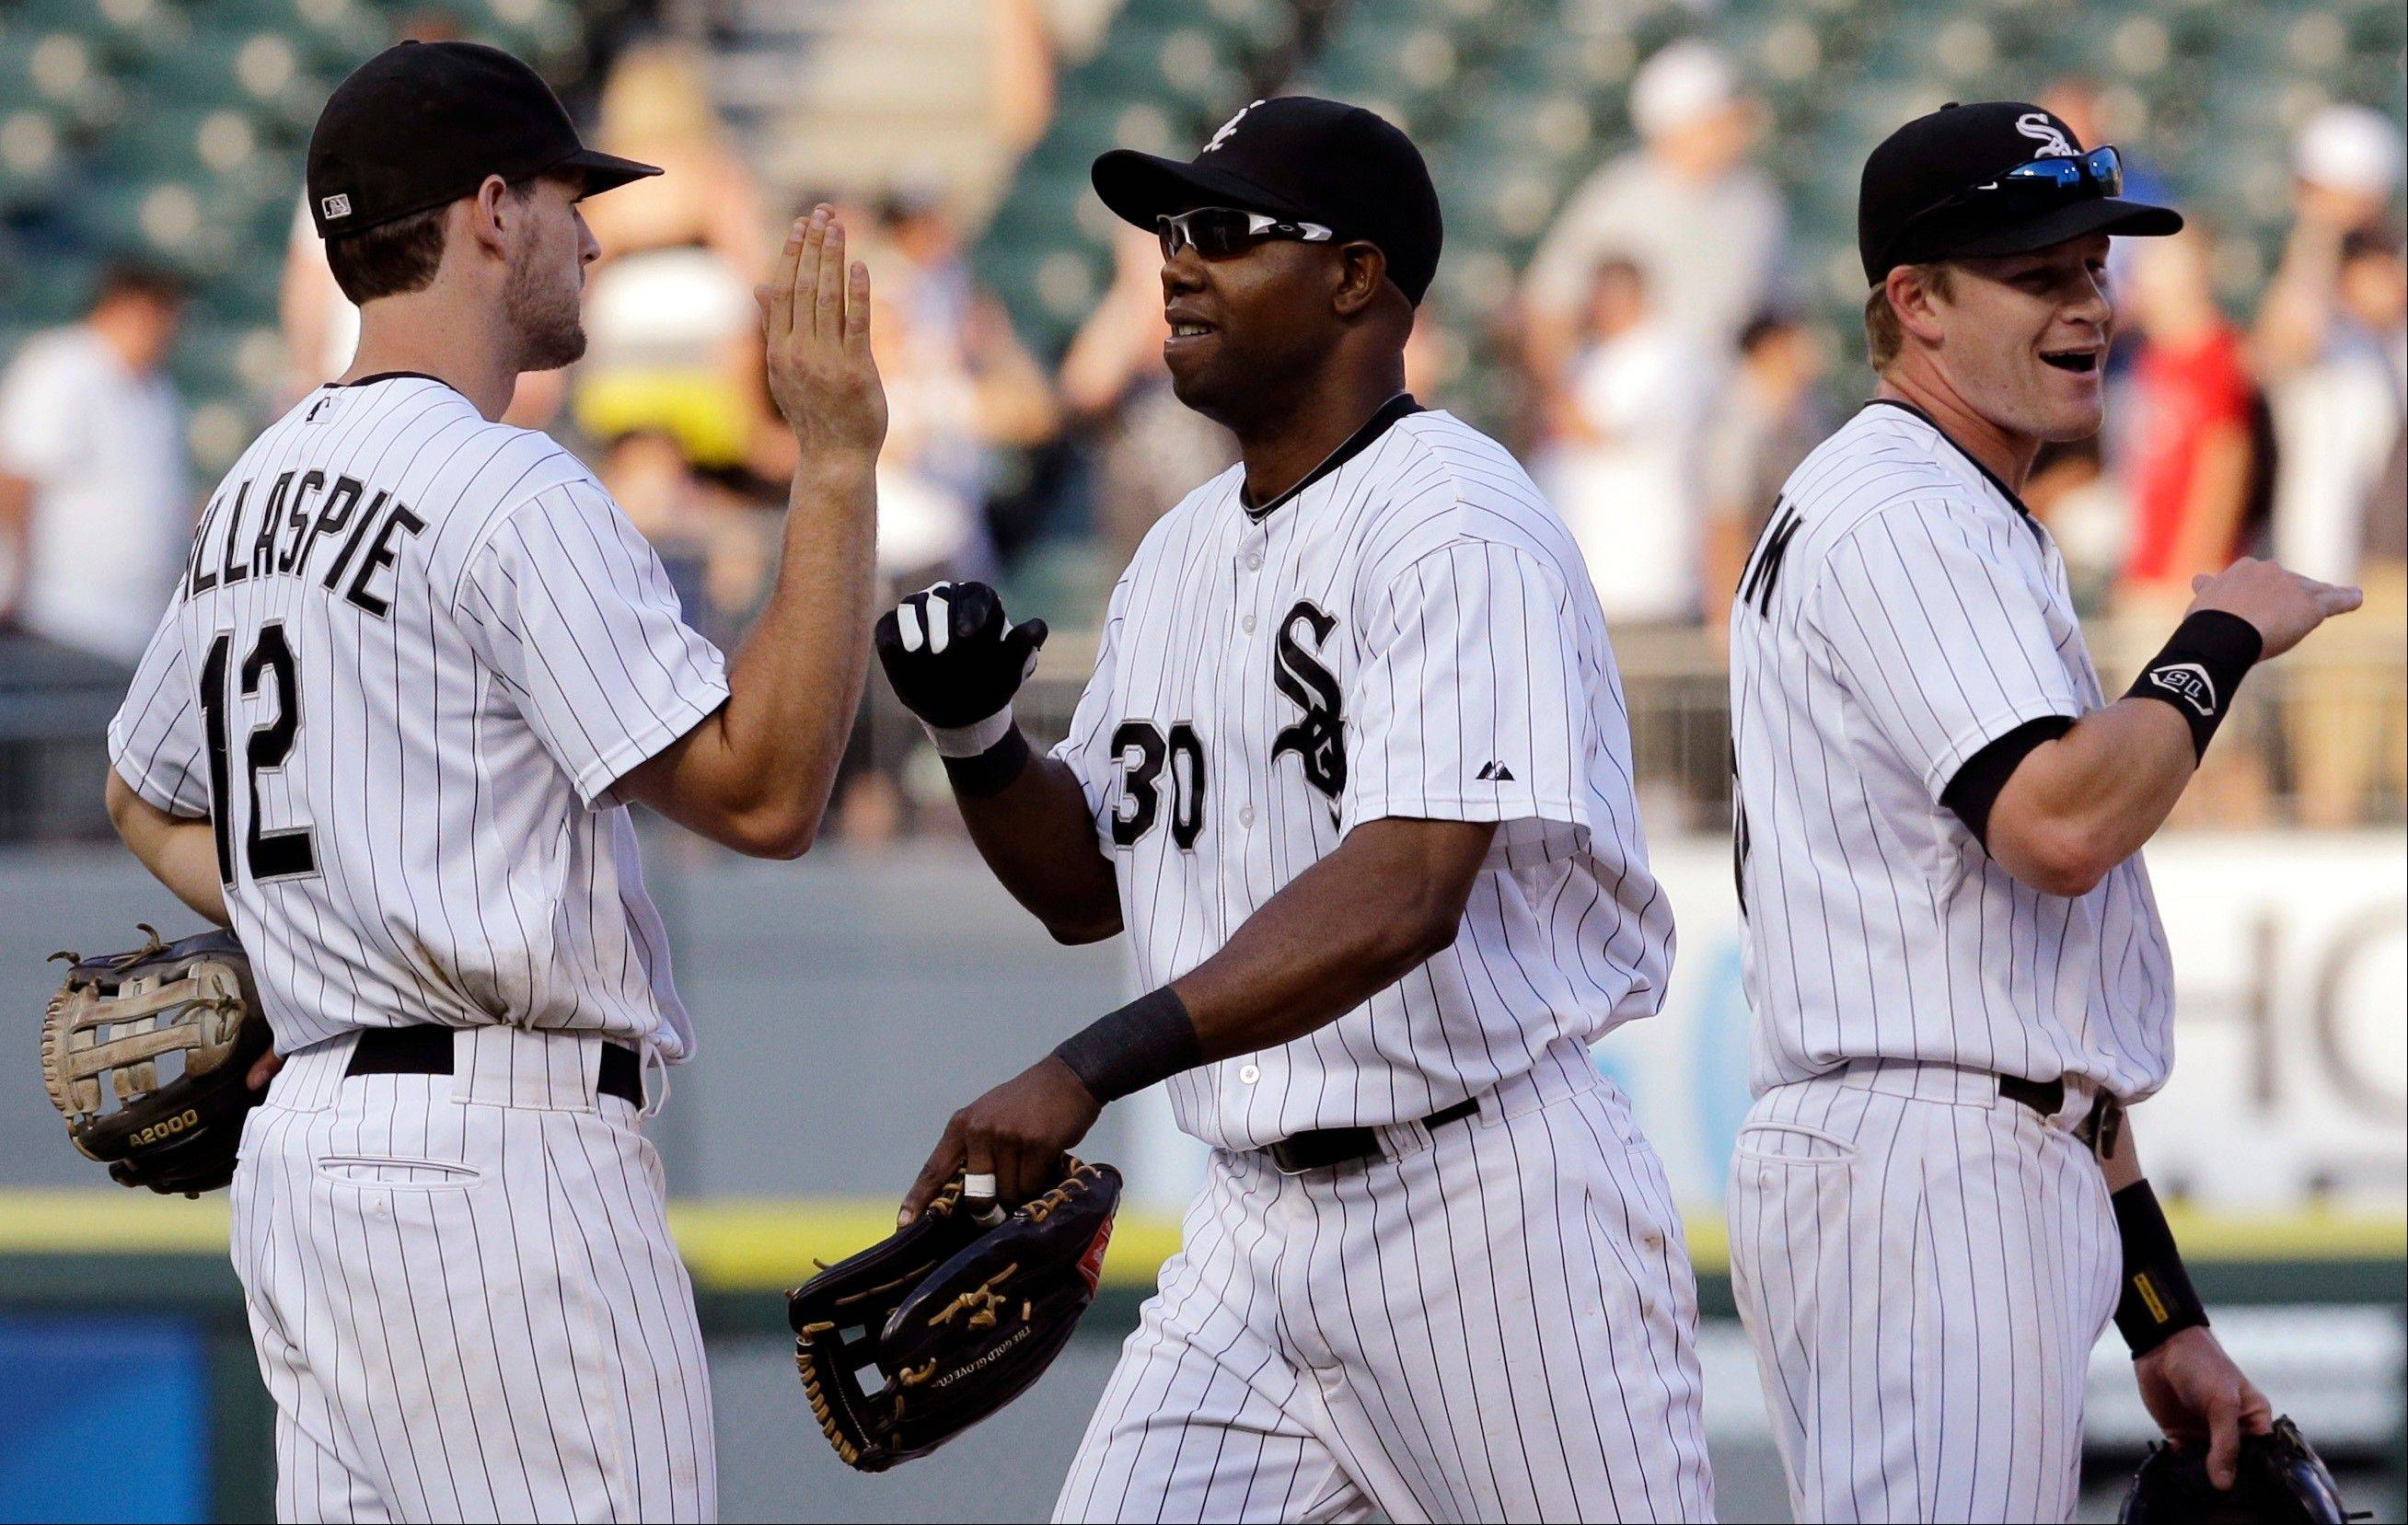 White Sox left fielder Alejandro De Aza, middle, celebrates with teammates Conor Gillaspie, left, and Gordon Beckham after Saturday�s 5-4 victory over the Minnesota Twins at U.S. Cellular Field.